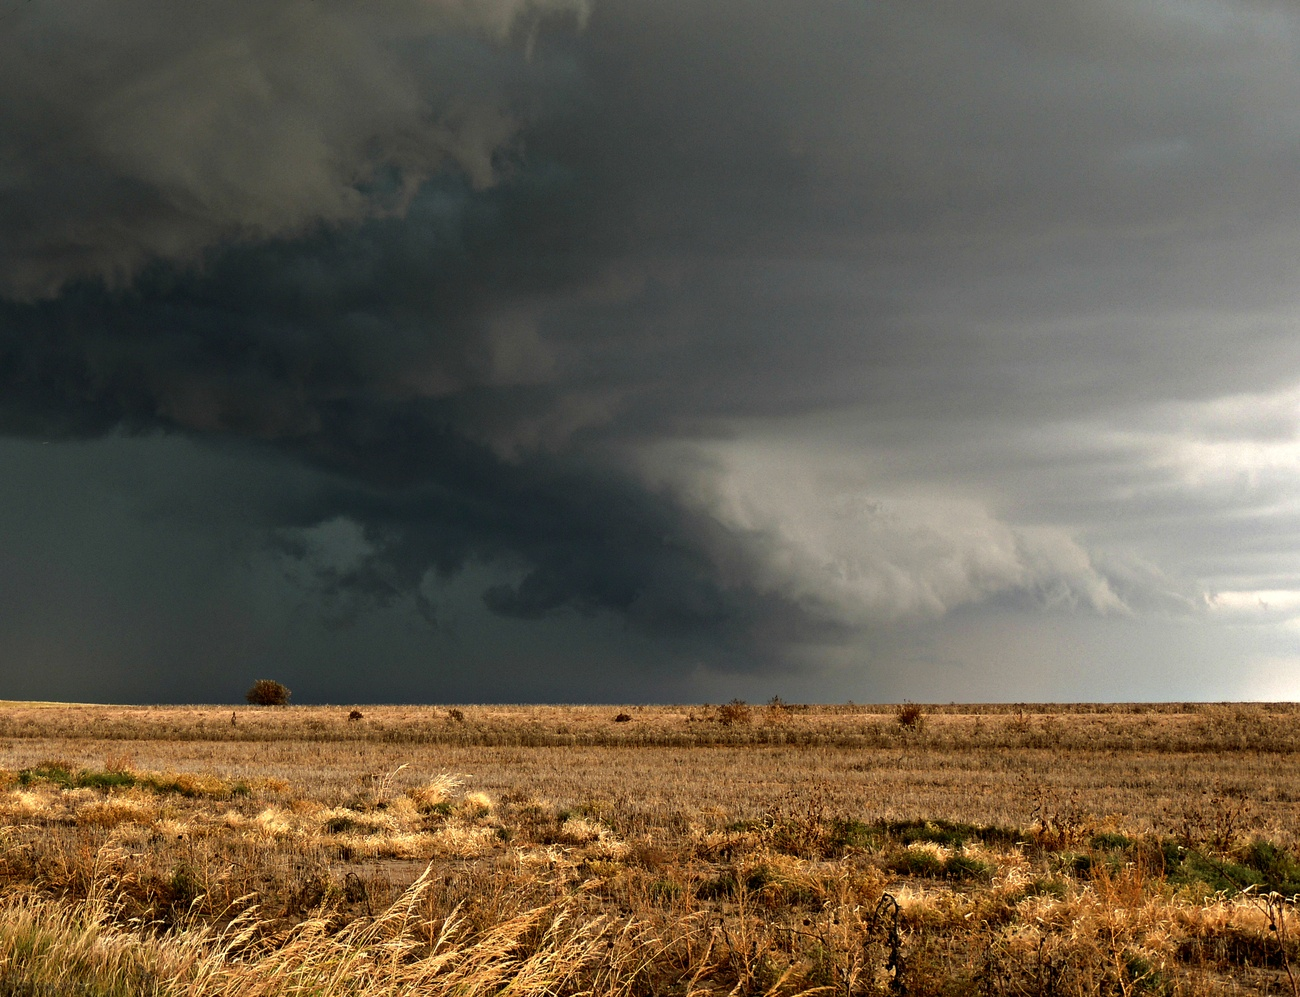 Driving into a storm in the Texas Panhandle.